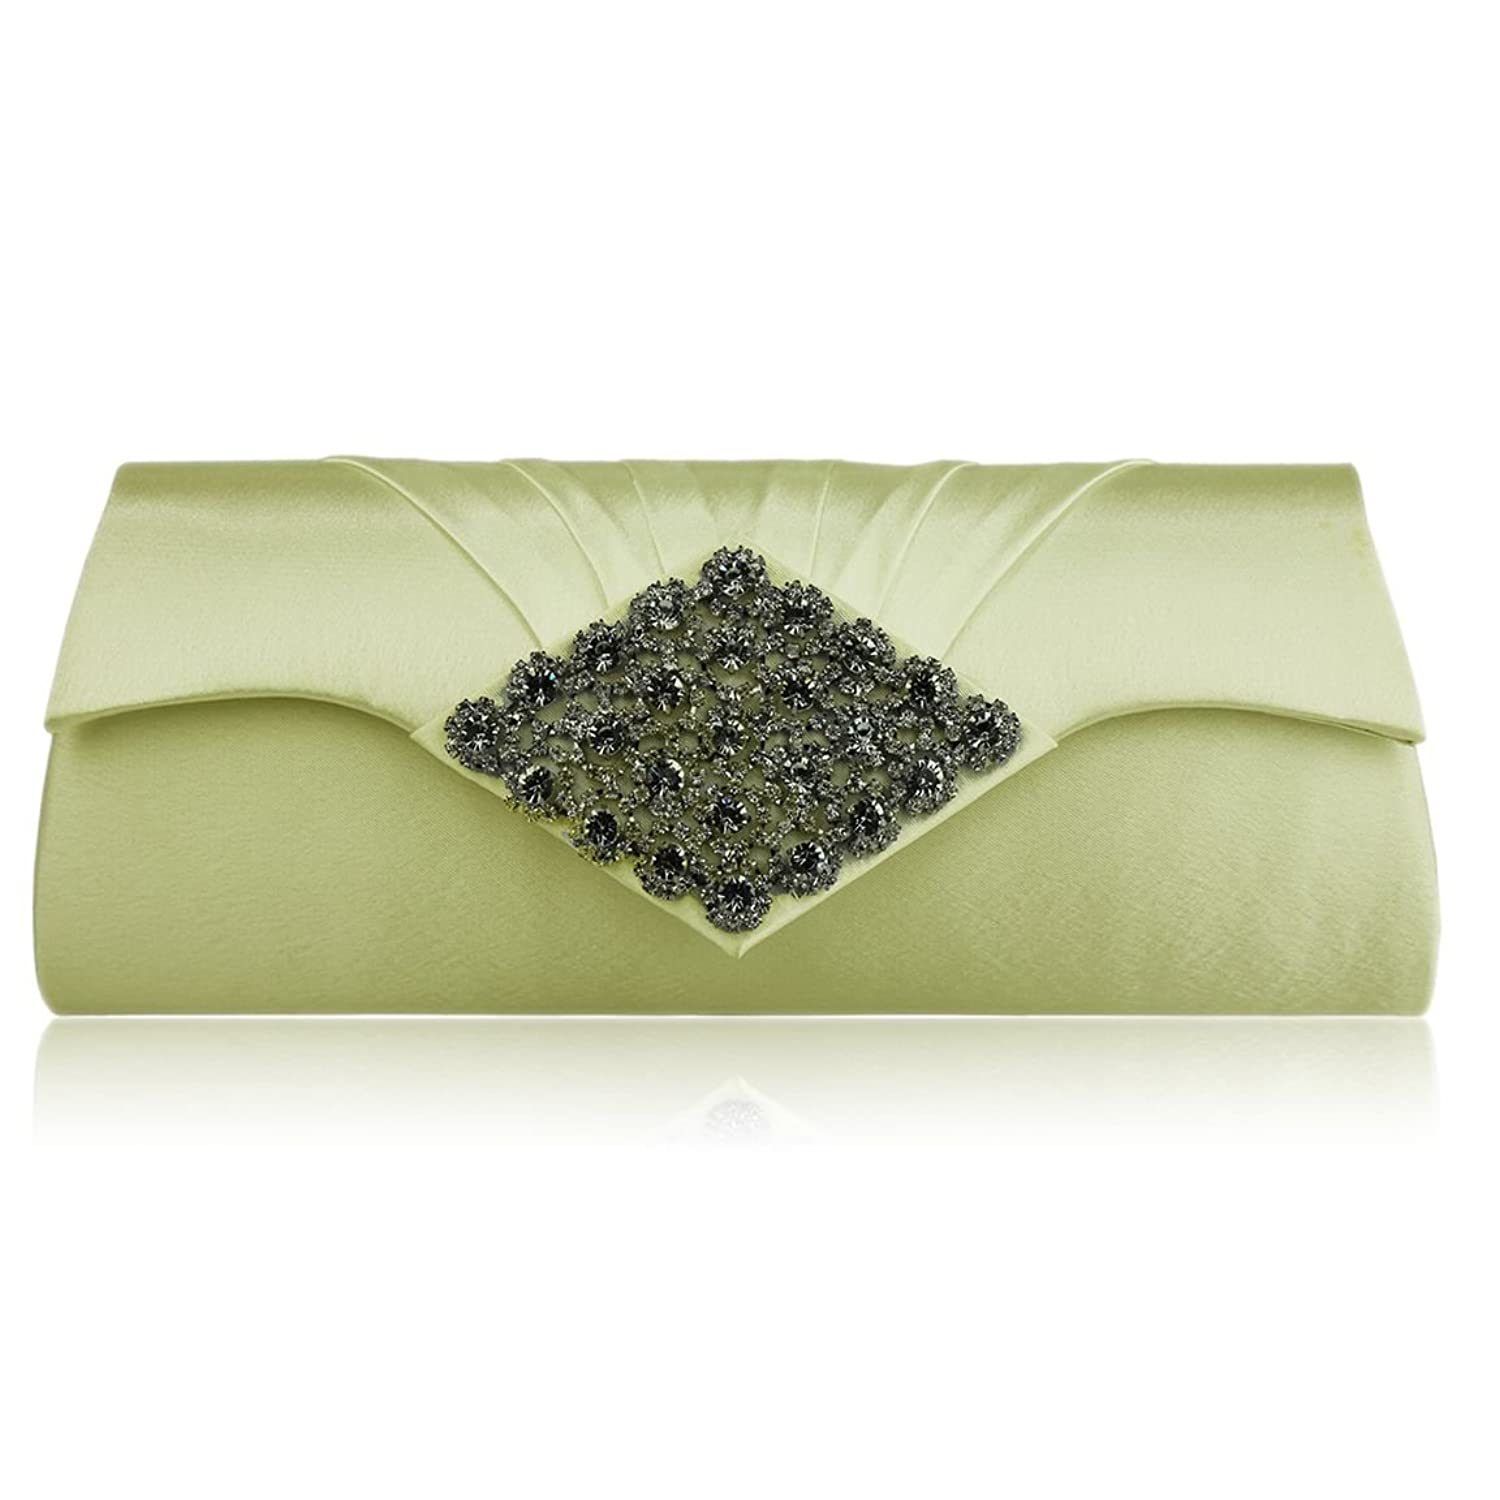 "Womens Floral Crystal Satin Pleated Flap Over Evening Clutch Bag (10"" x 4"")"